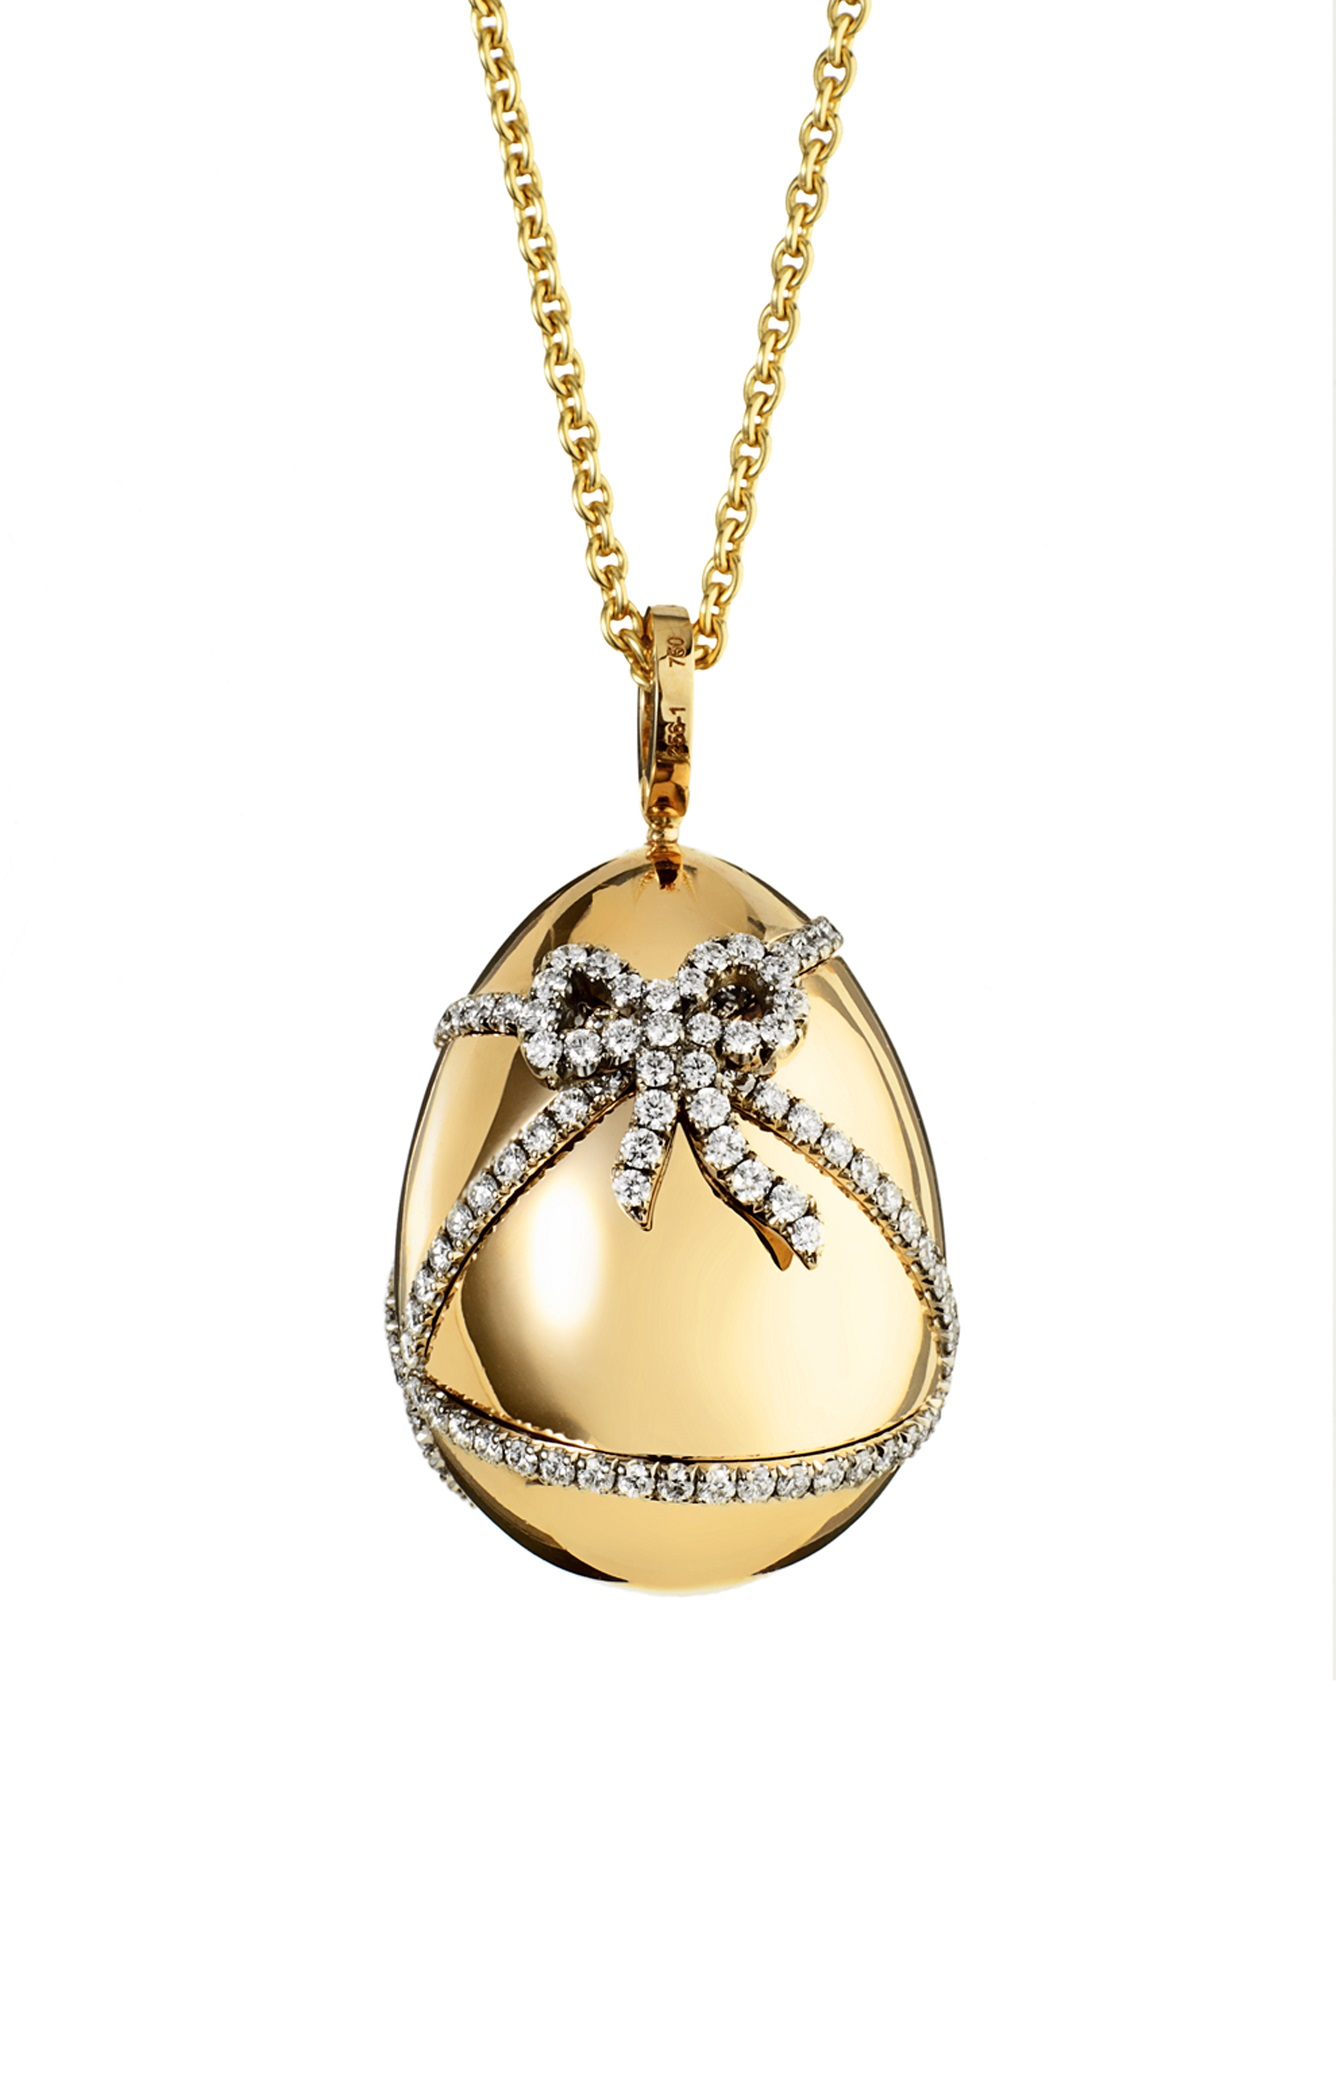 Faberge 'Oeuf Cadeau' egg pendant with 1.04cts of white diamonds. Available in pink and yellow gold. $14,825